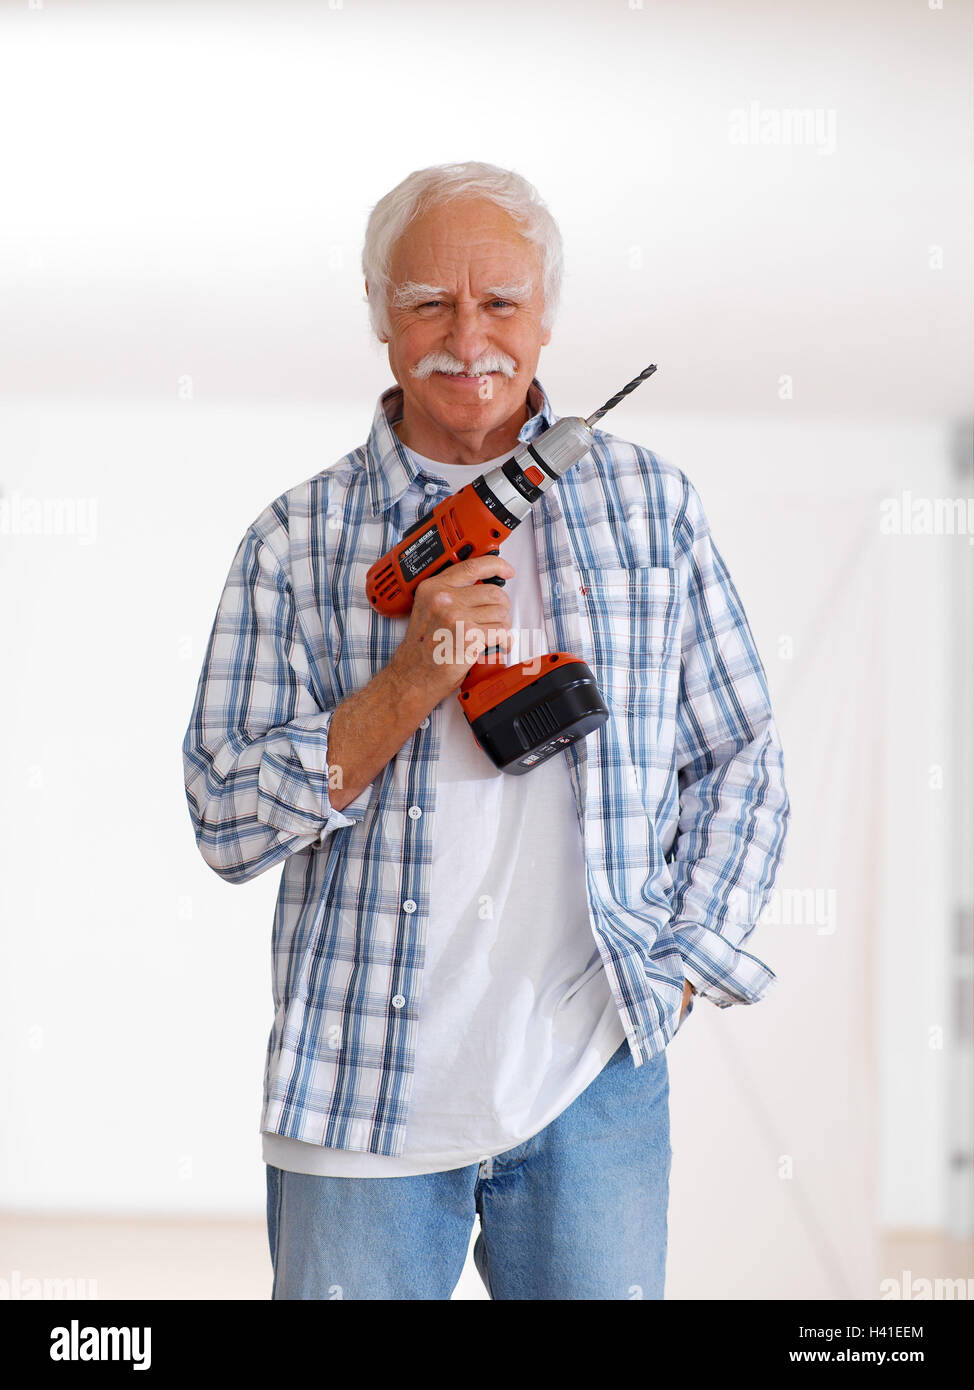 Senior drill flat renovation works do it yourself smile stock senior drill flat renovation works do it yourself smile renovate 60 70 years man pensioner do it yourselfer actively fit agile old person solutioingenieria Gallery